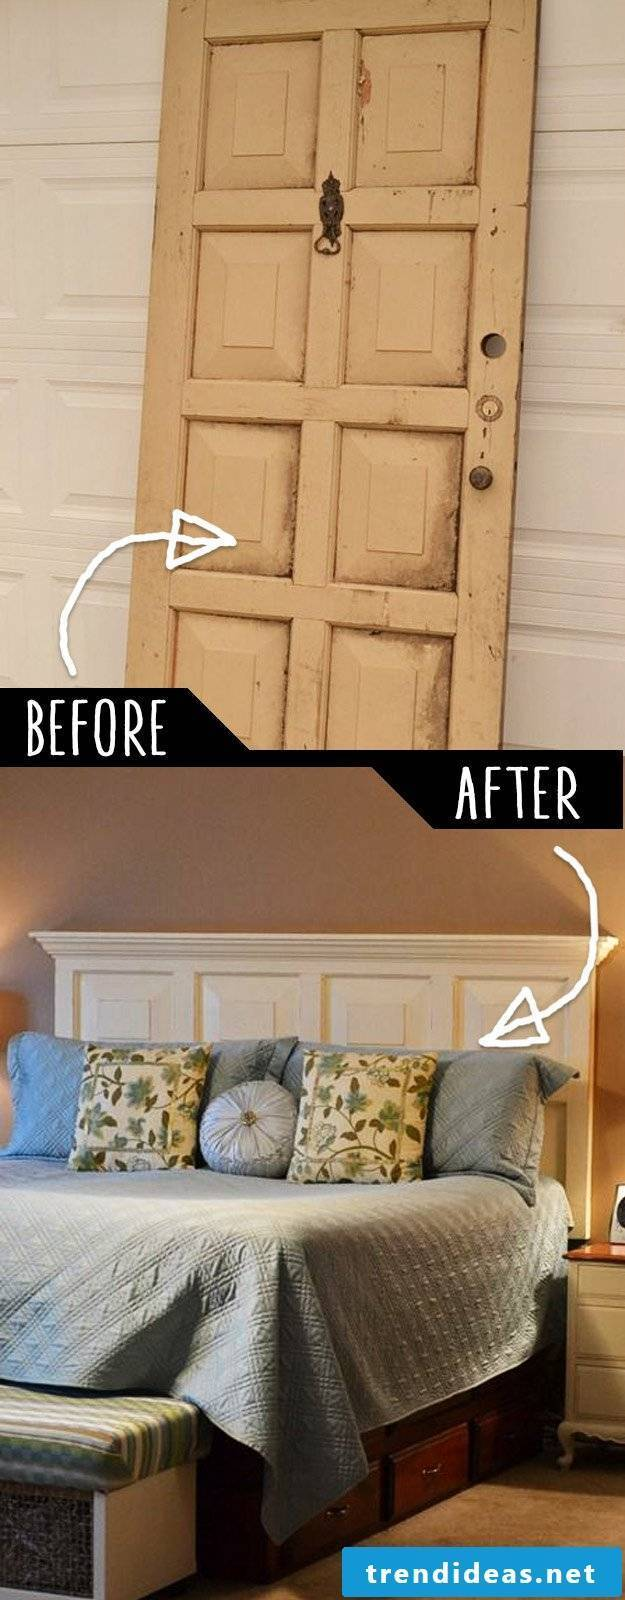 Do it yourself hacks with an old door